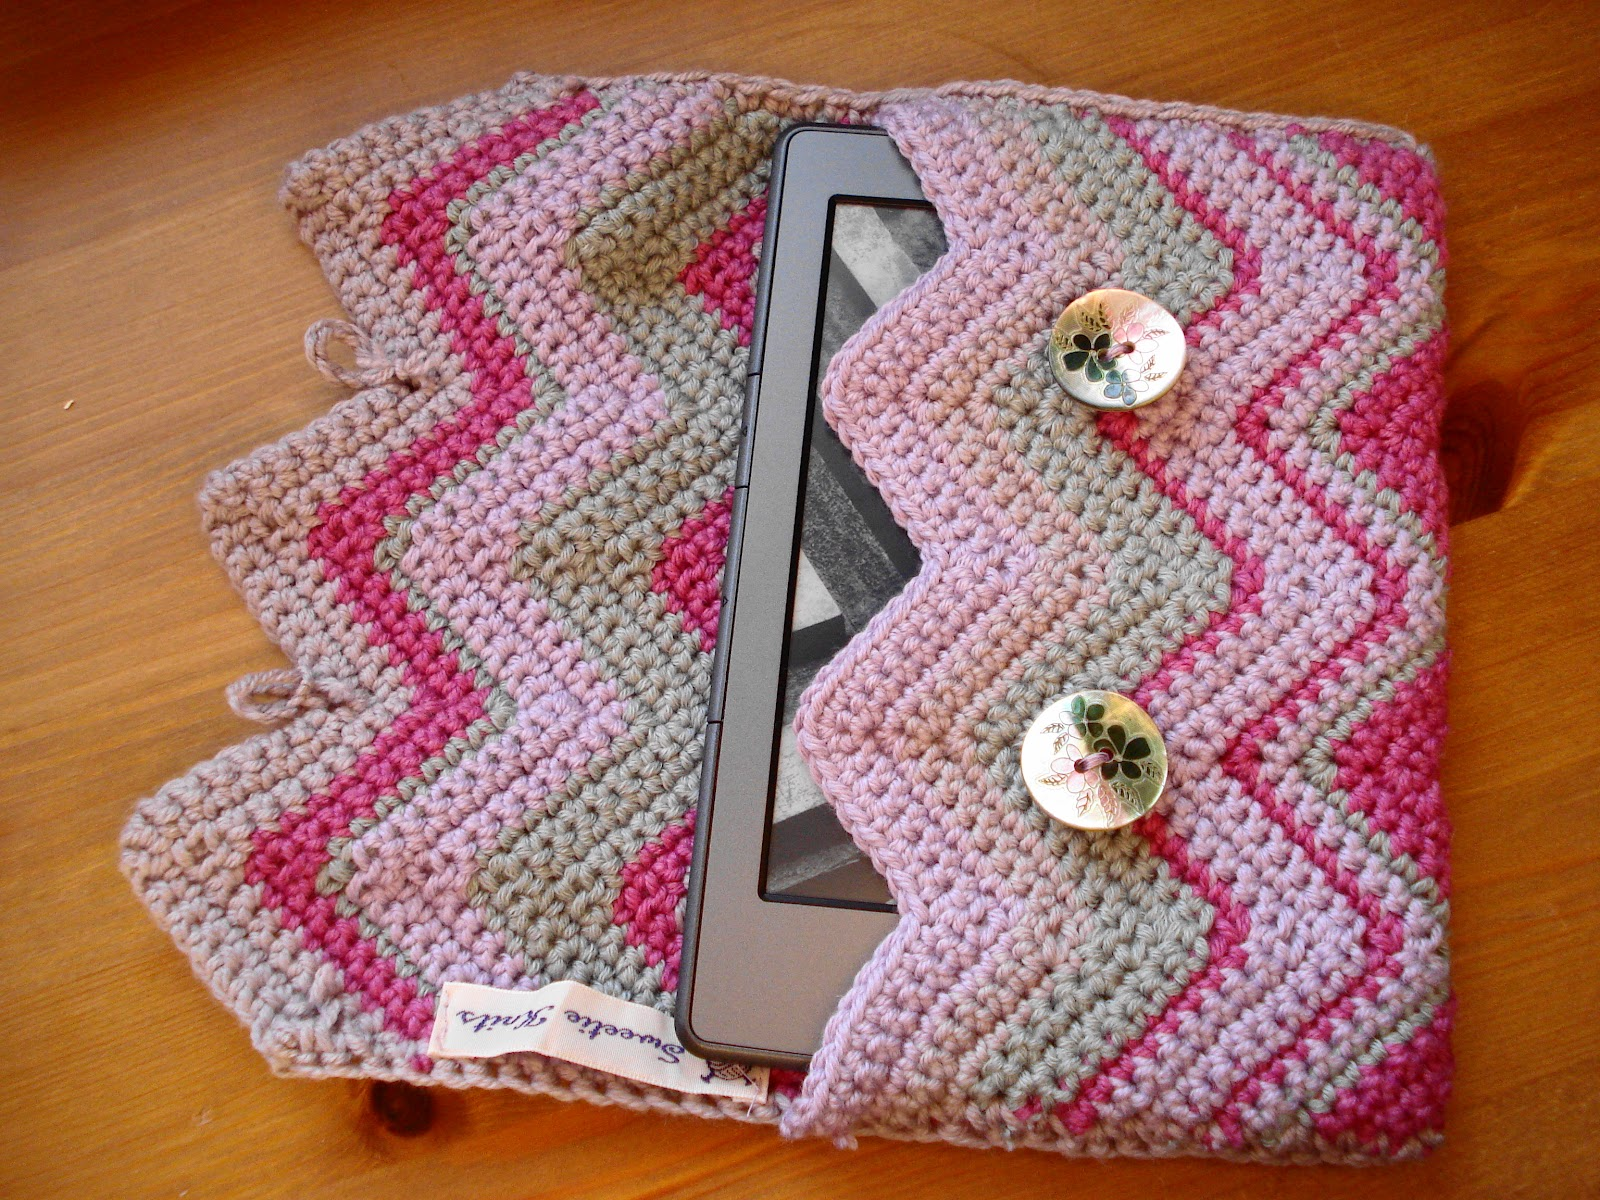 Lavender and Wild Rose: Crochet kindle case